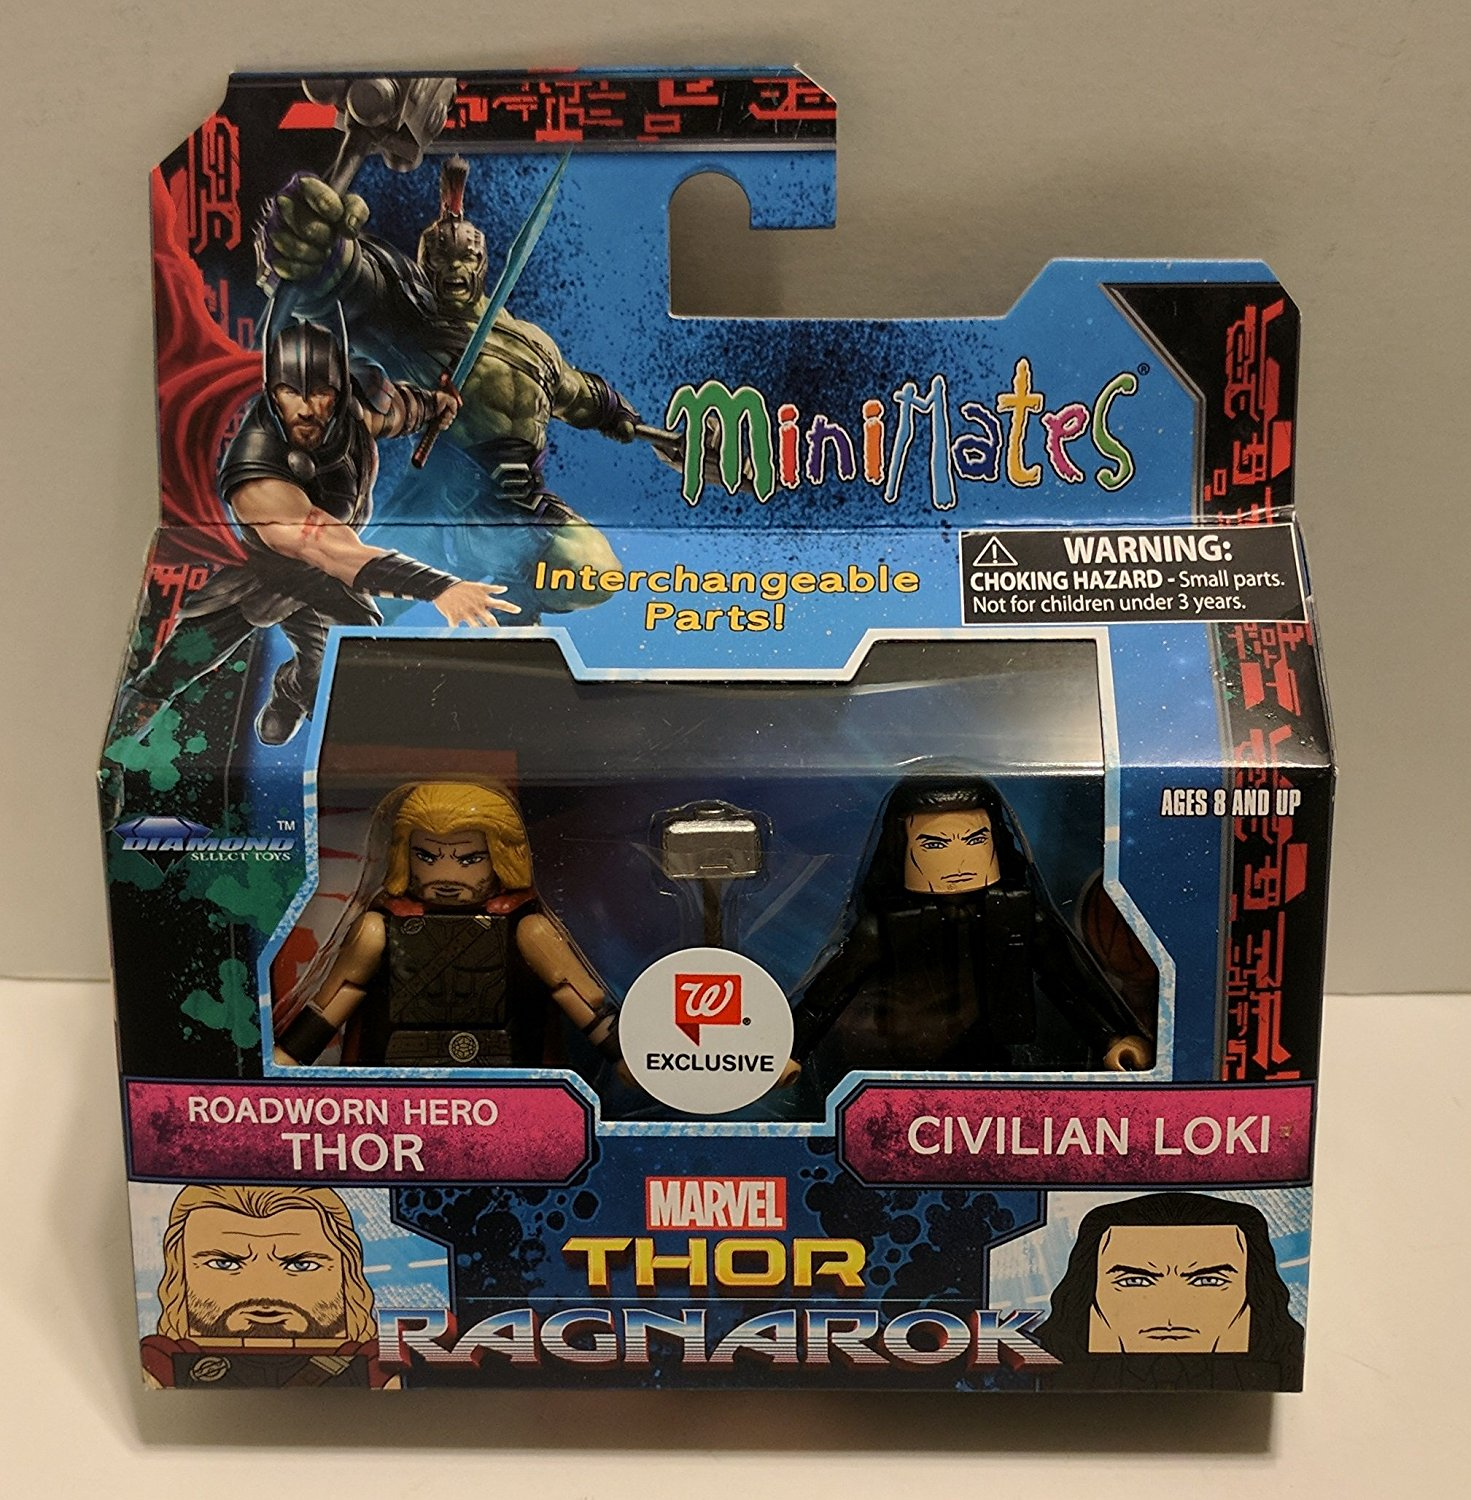 Marvel Thor: Ragnarok Roadworn Thor & Civilian Loki Walgreens Minifigures, 2 inch Minifigures with exchangeable parts and 14 points of.., By Minimates Ship from US